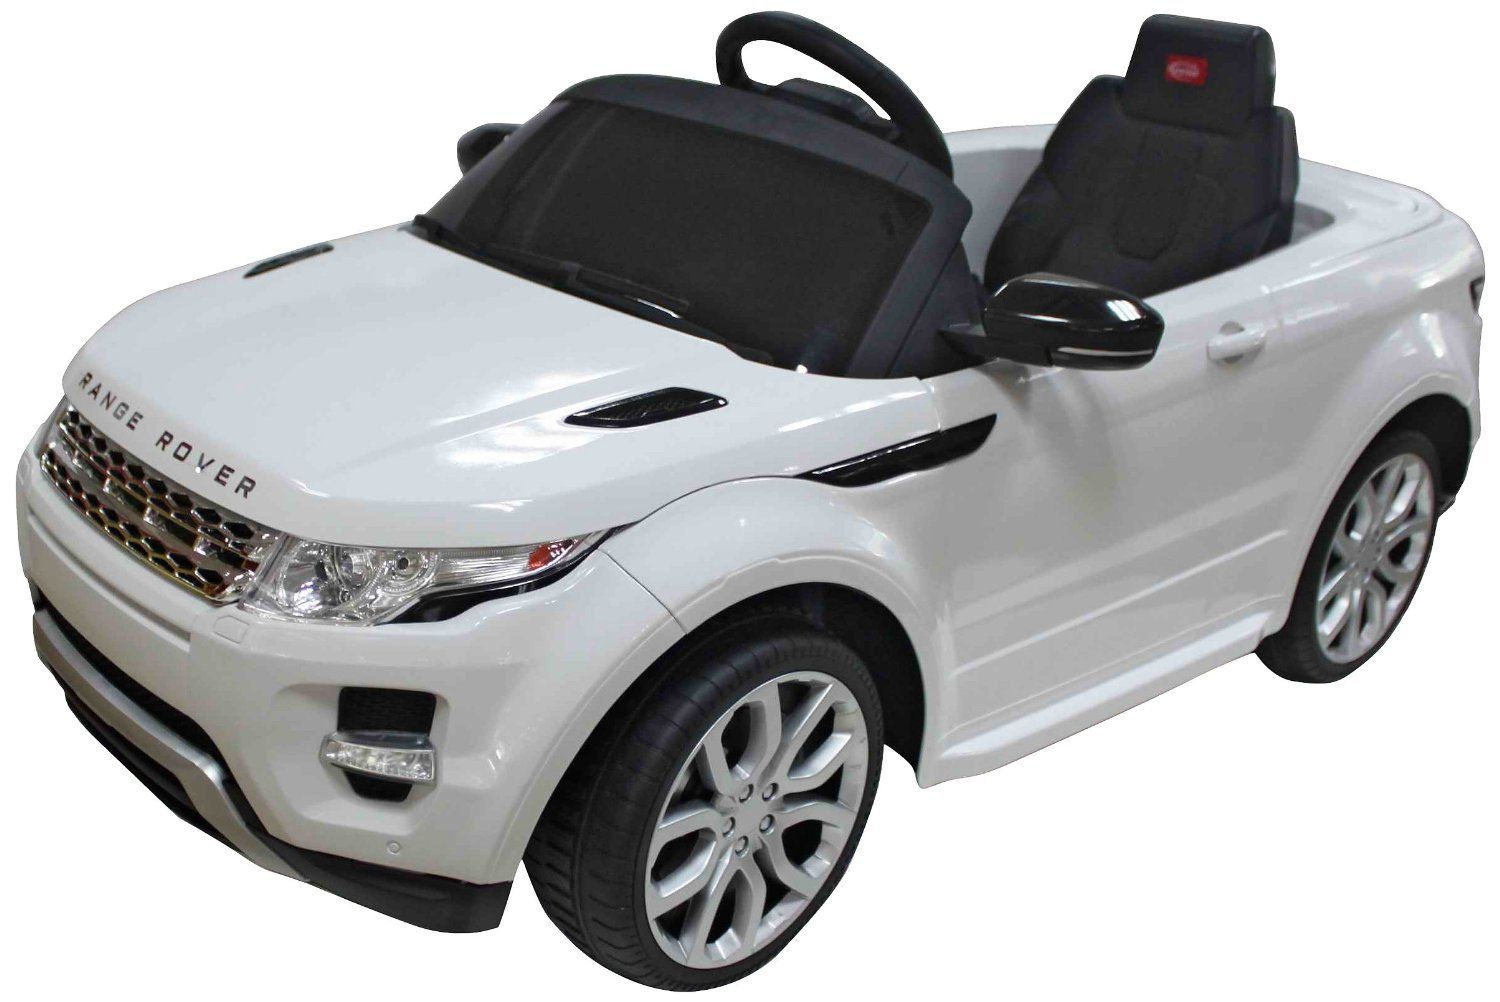 This Is A Sit In And Drive Car For Kids Http Flying Drones For Sale My Free Website Battery Powered Car Land Rover Range Rover